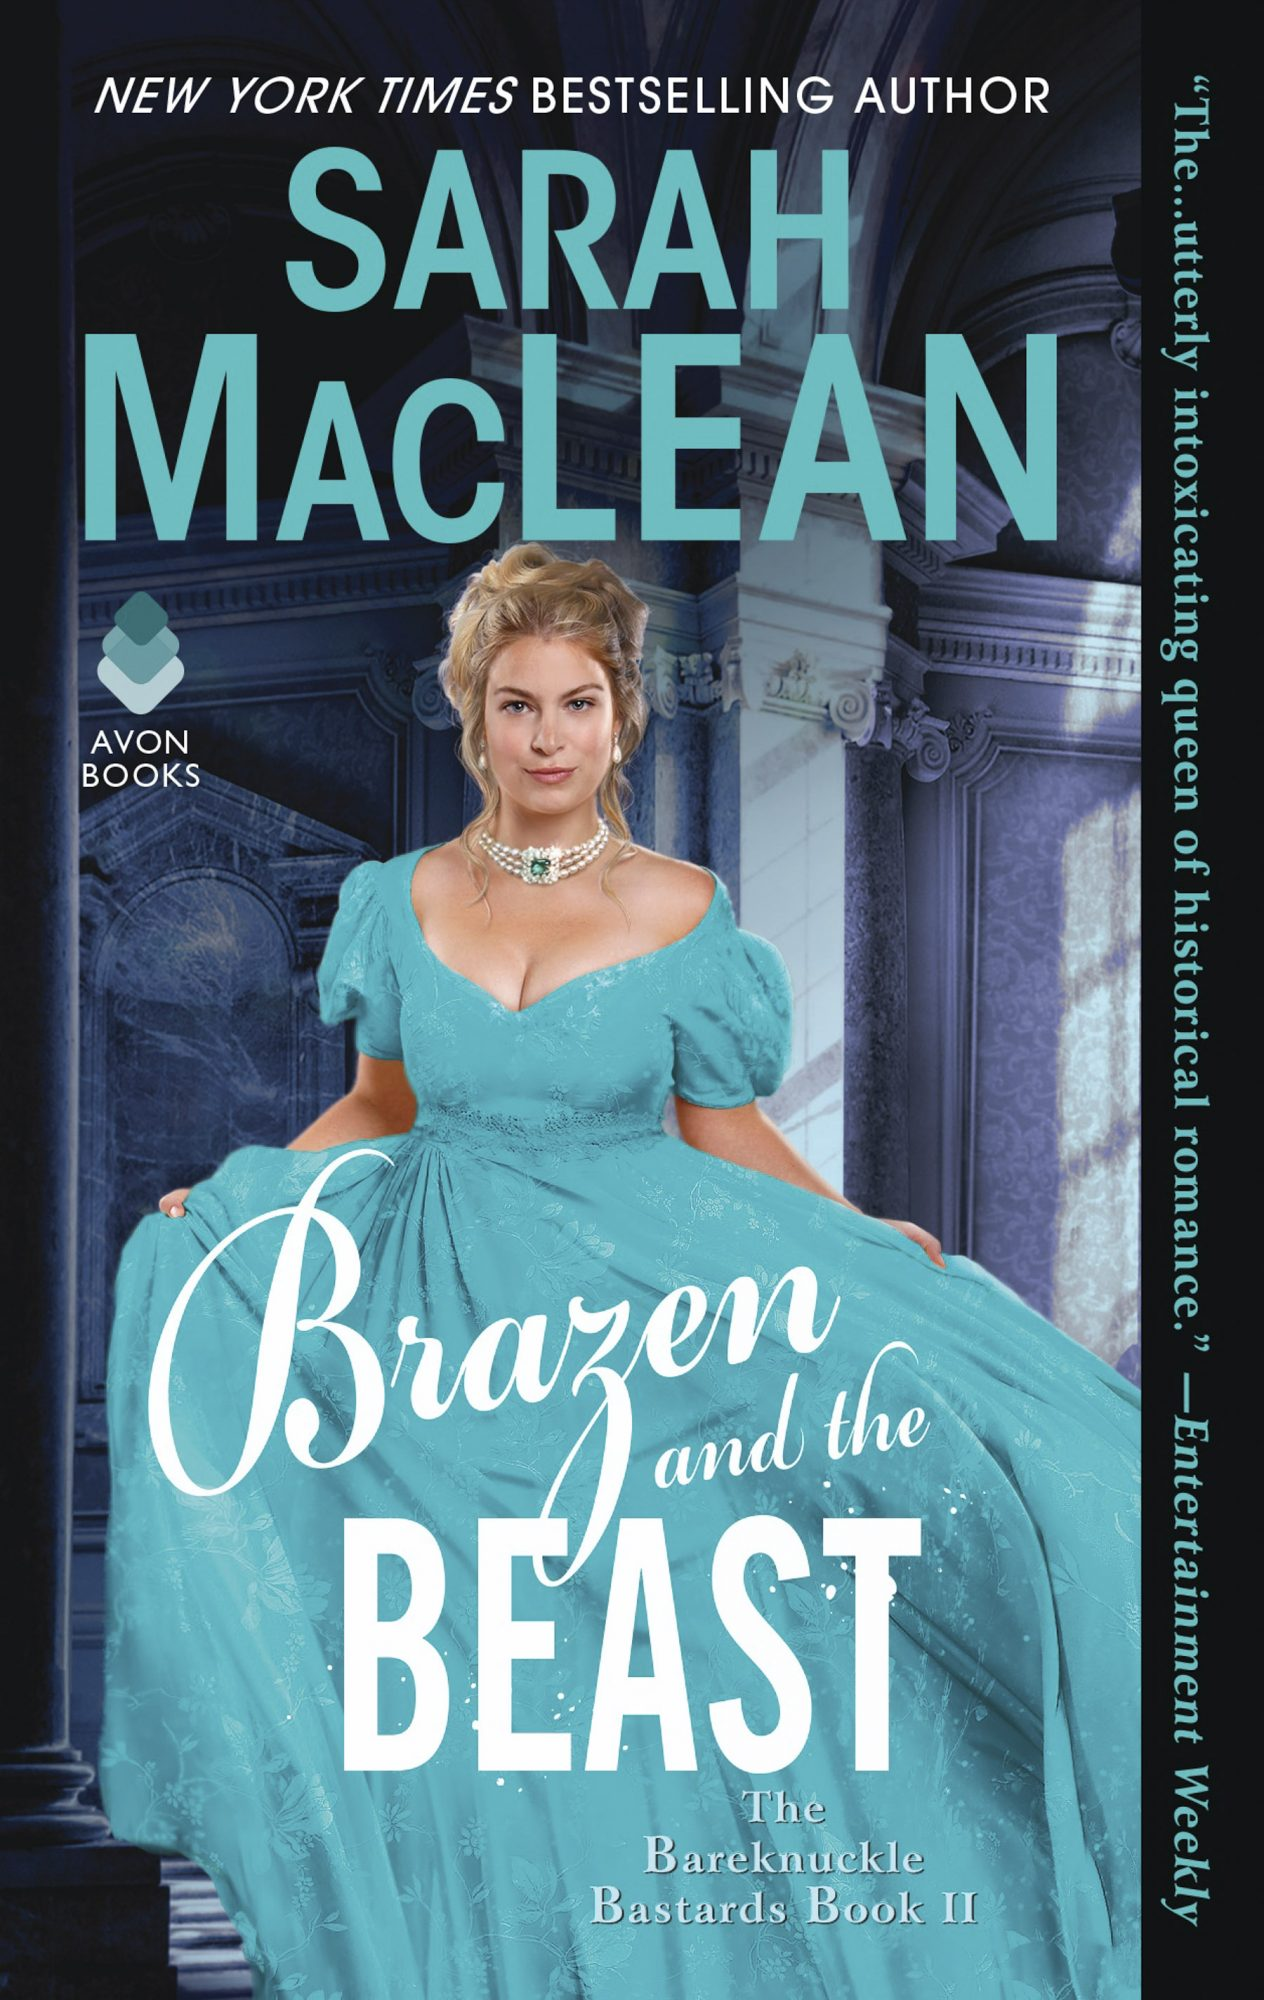 Brazen and the Beast: The Bareknuckle Bastards by Sarah MacLean CR: HarperCollins